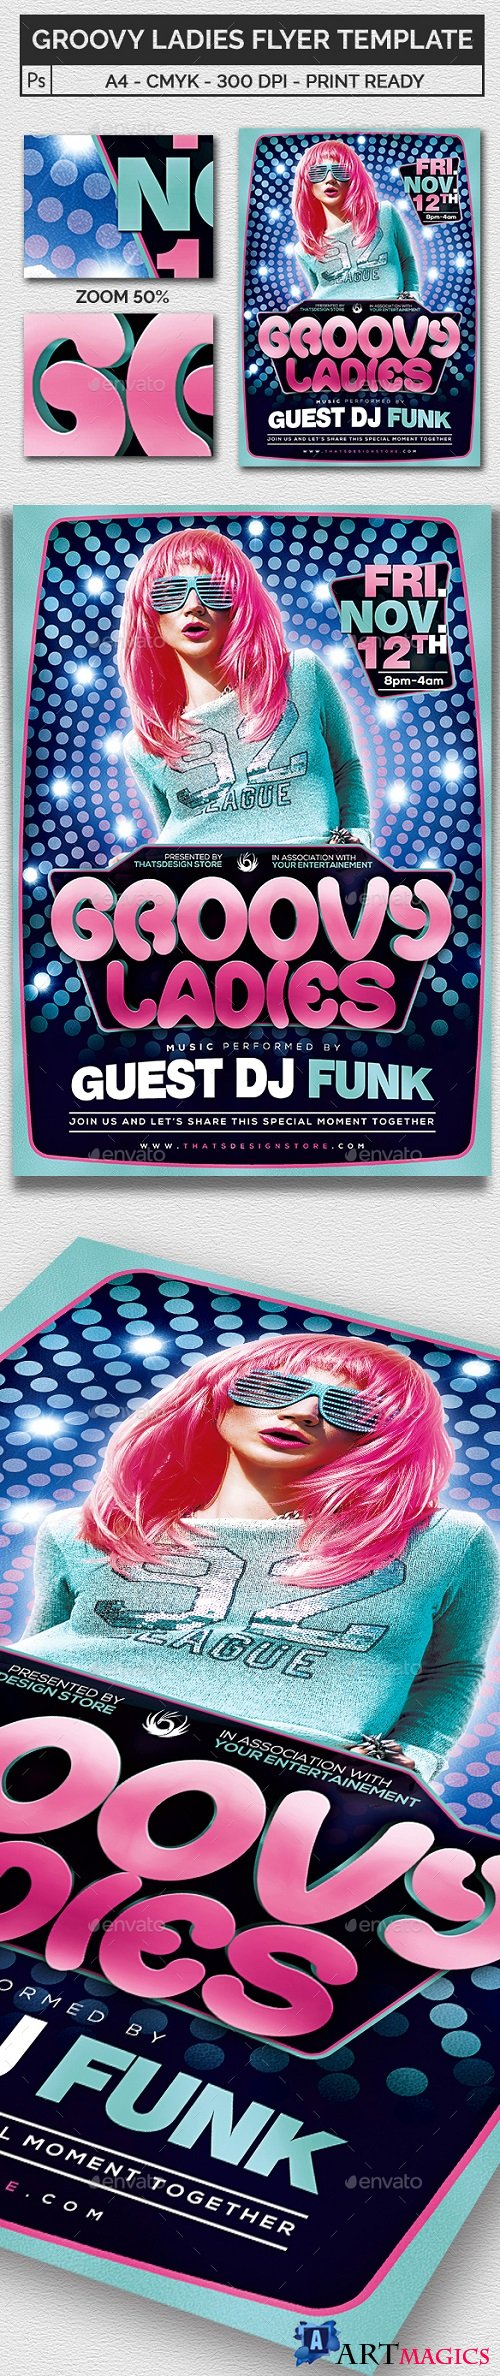 Groovy Ladies Flyer Template 18602793 - 994767